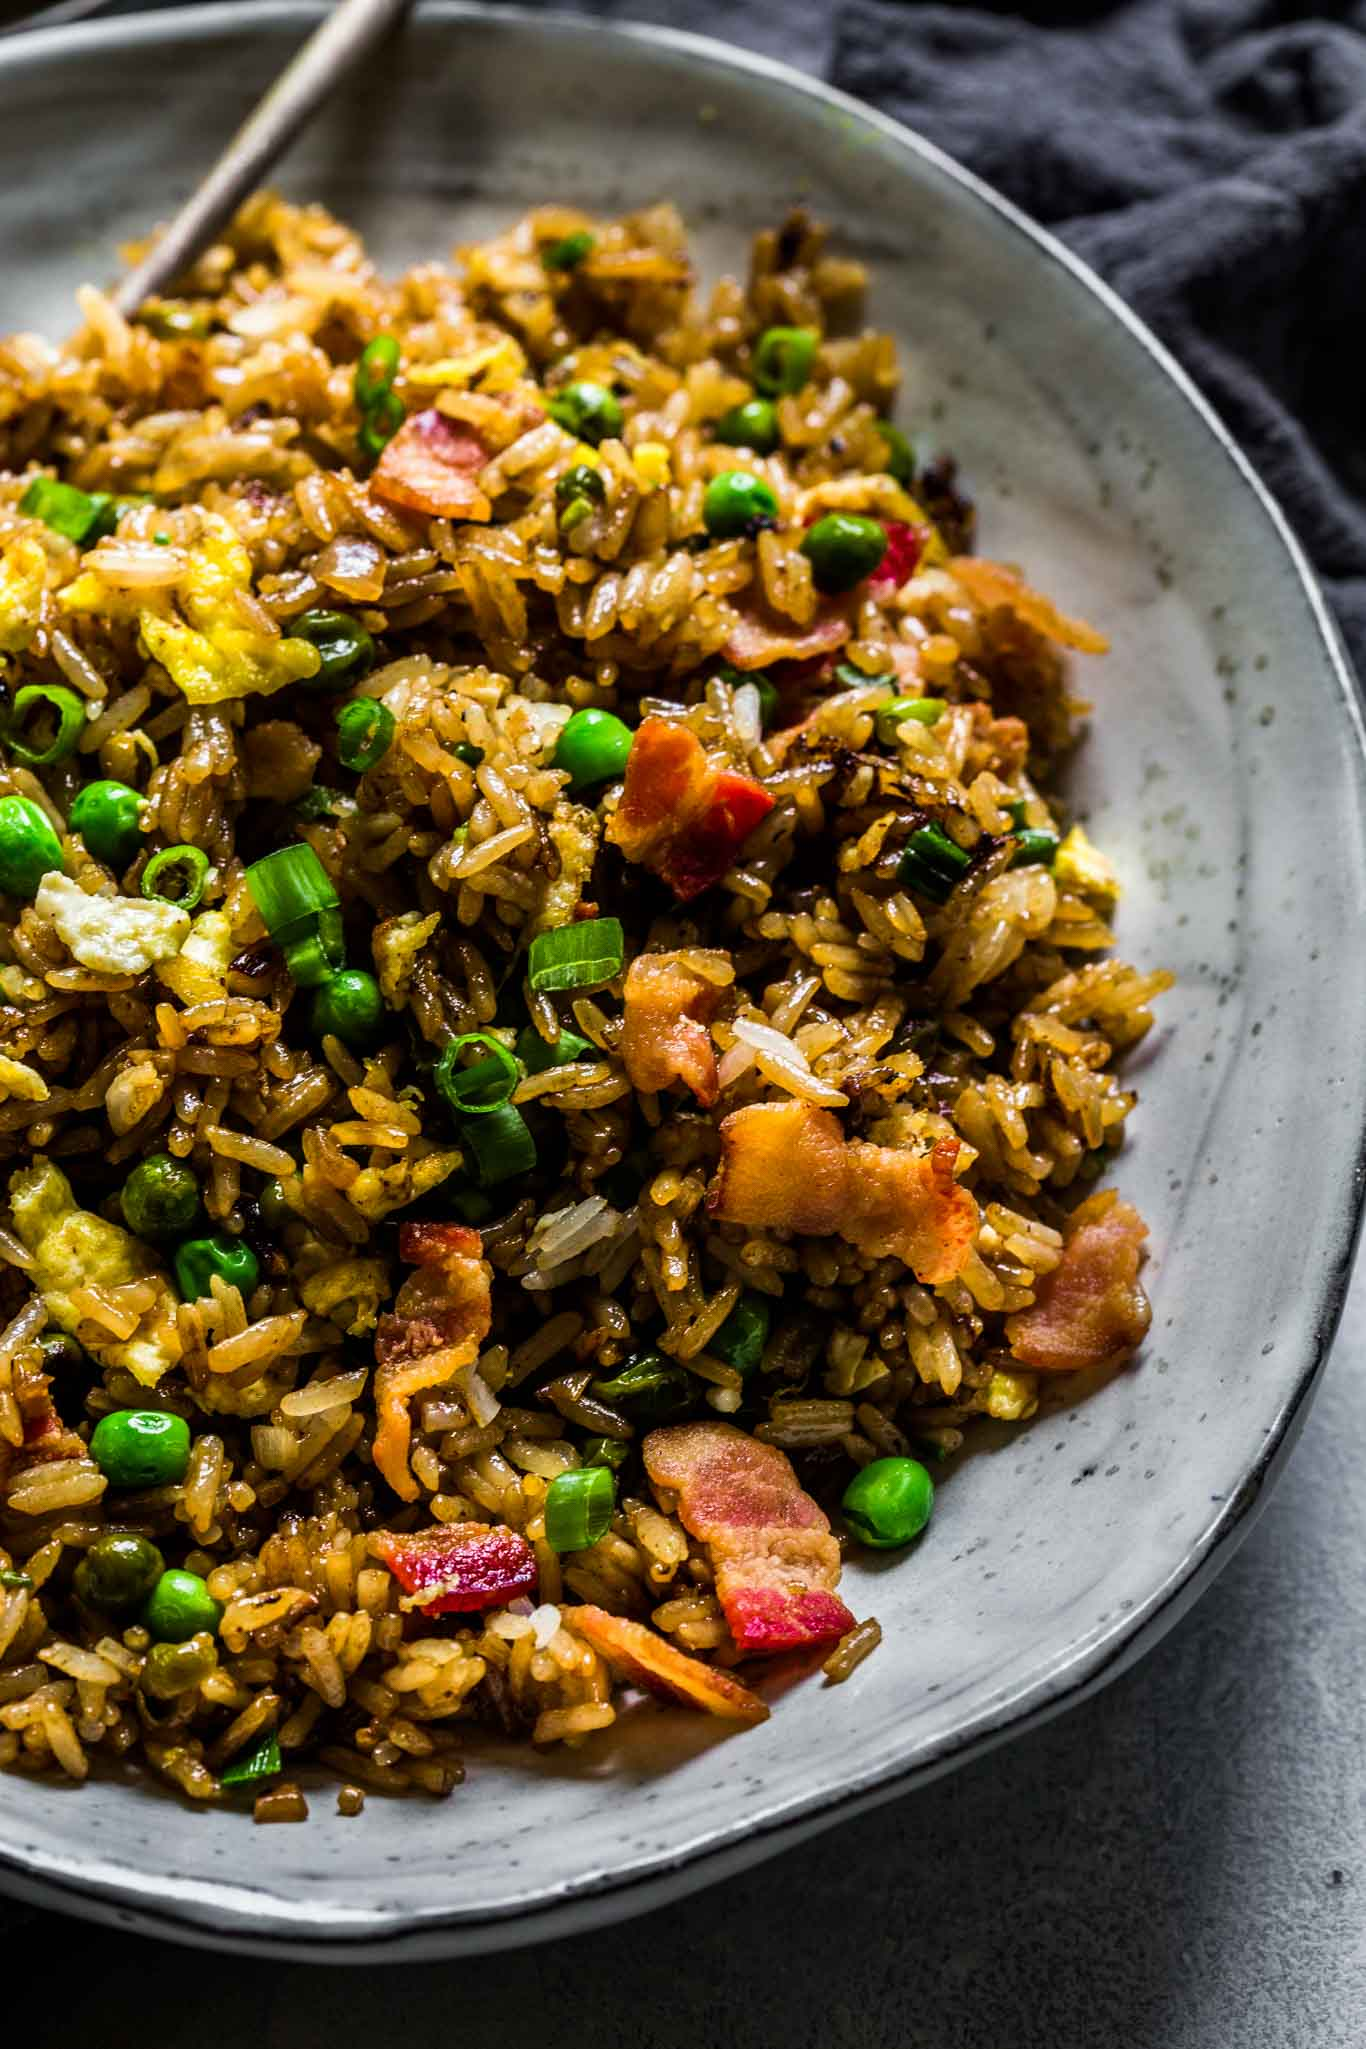 Bacon fried rice in large bowl.